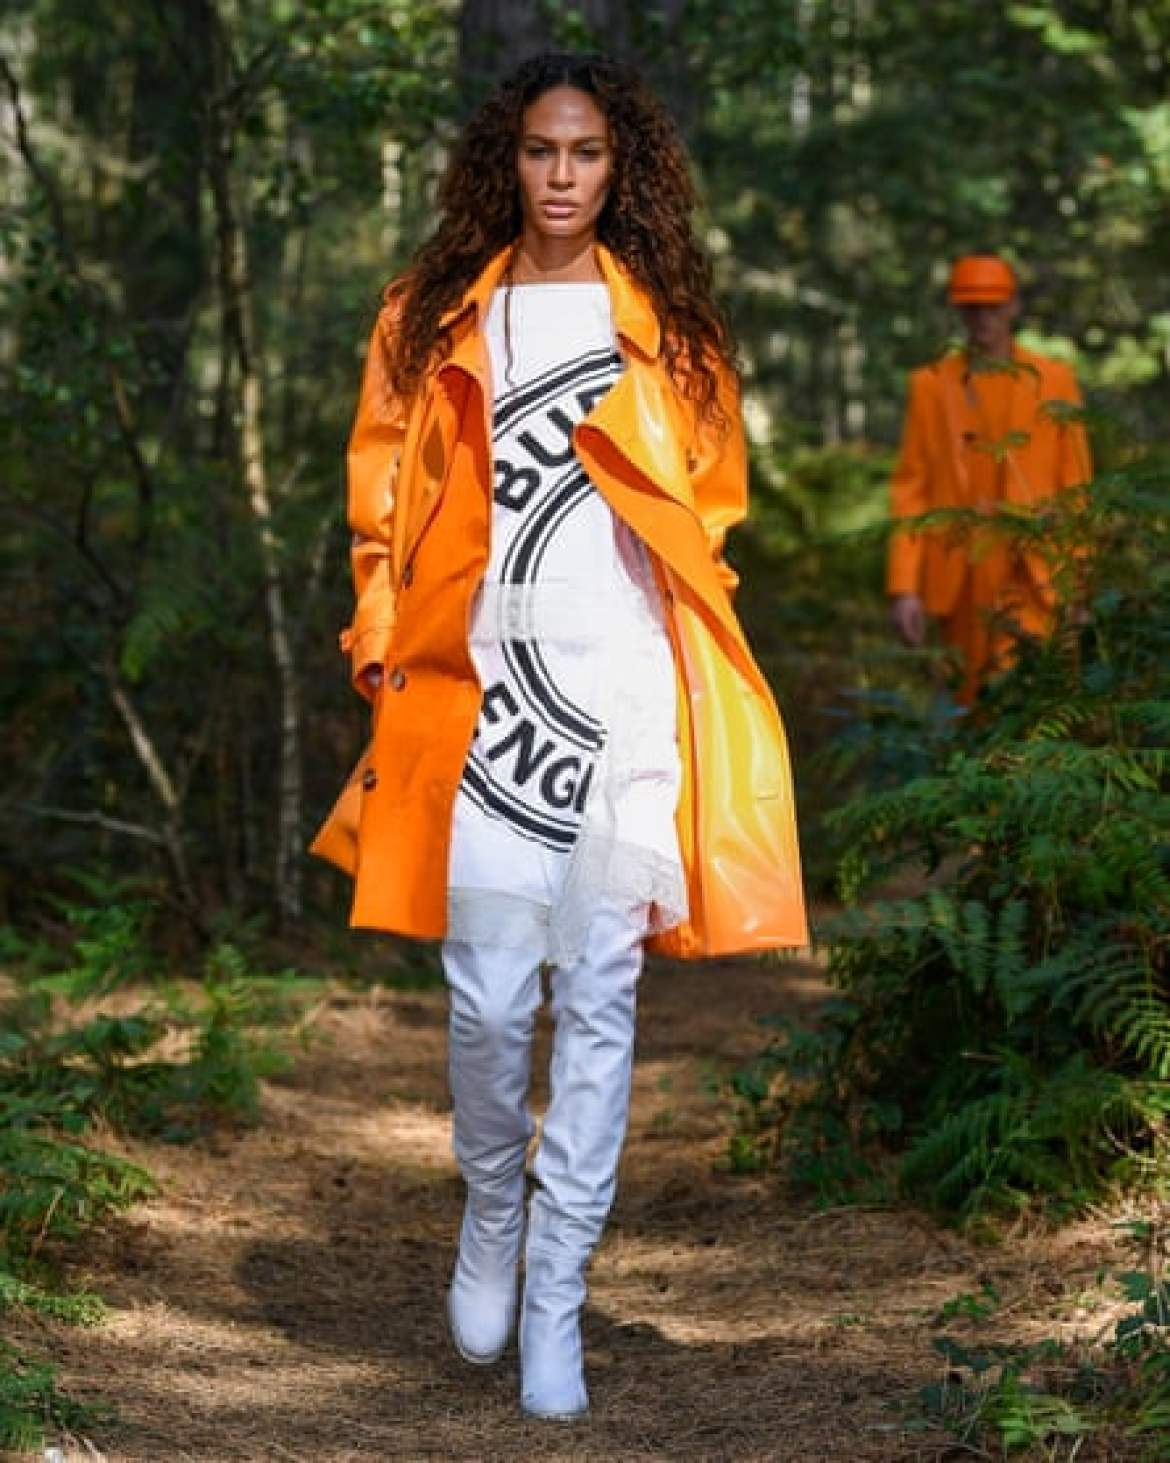 Orange trenchcoat, T-shirt with logo, tight white trousers